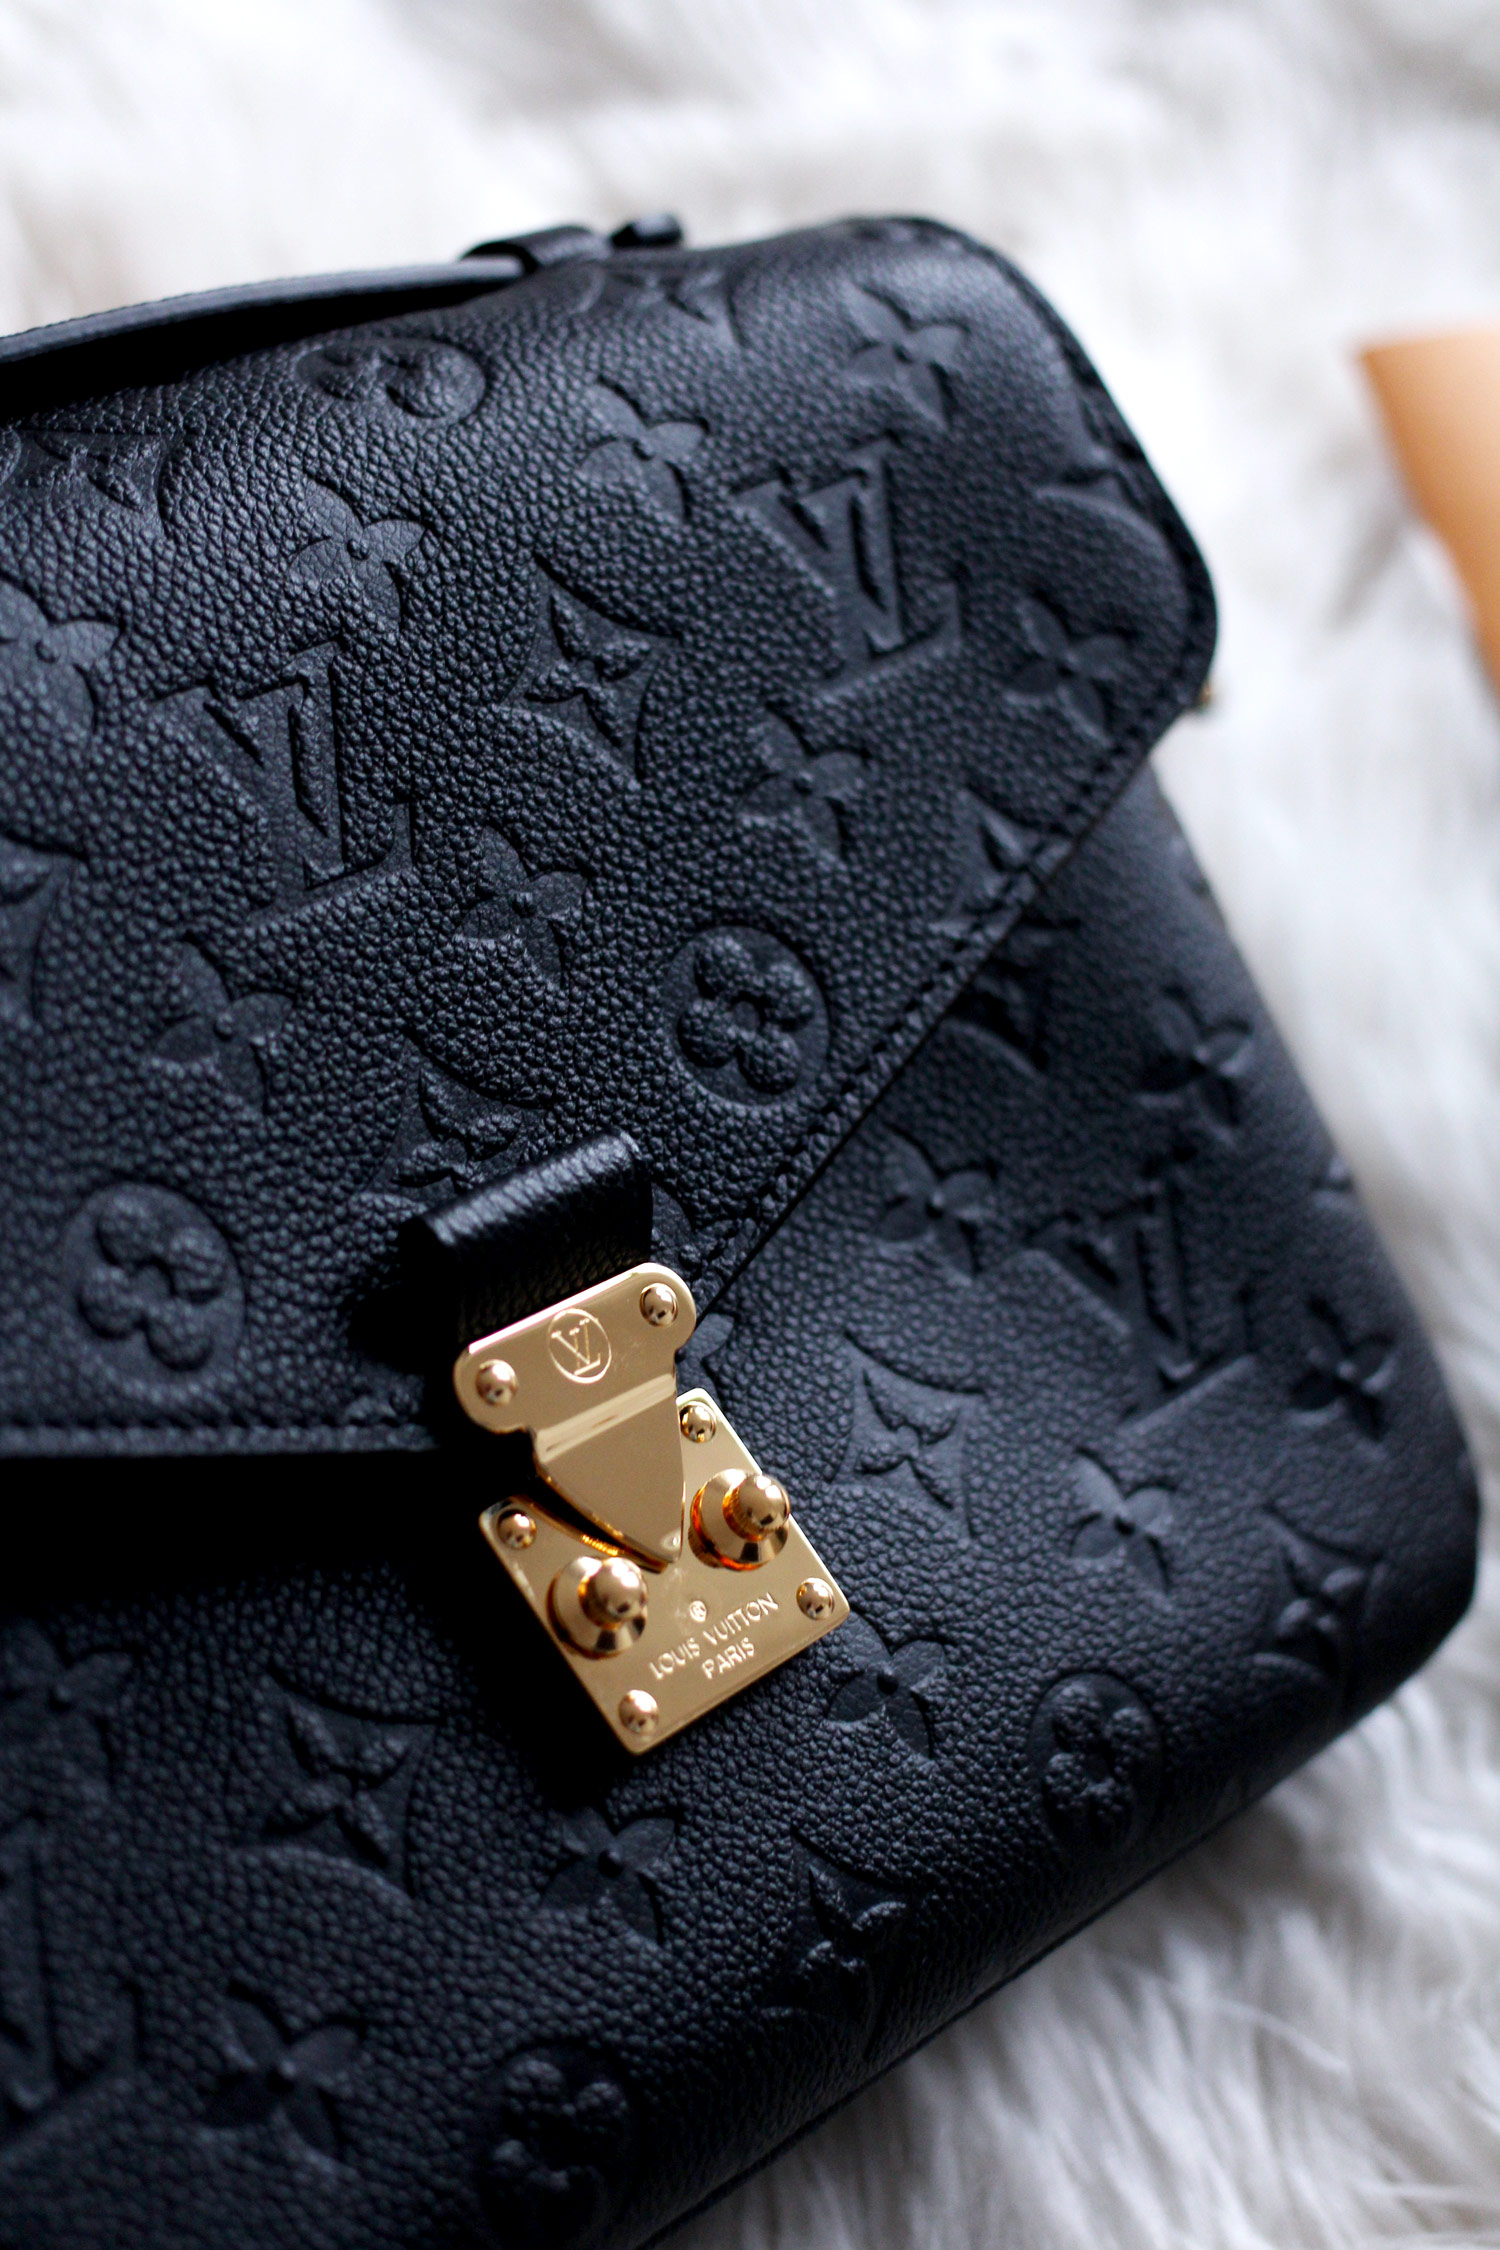 louis-vuitton-pochette-metis-Monogram-Empreinte-Leather-black-bag-review-3